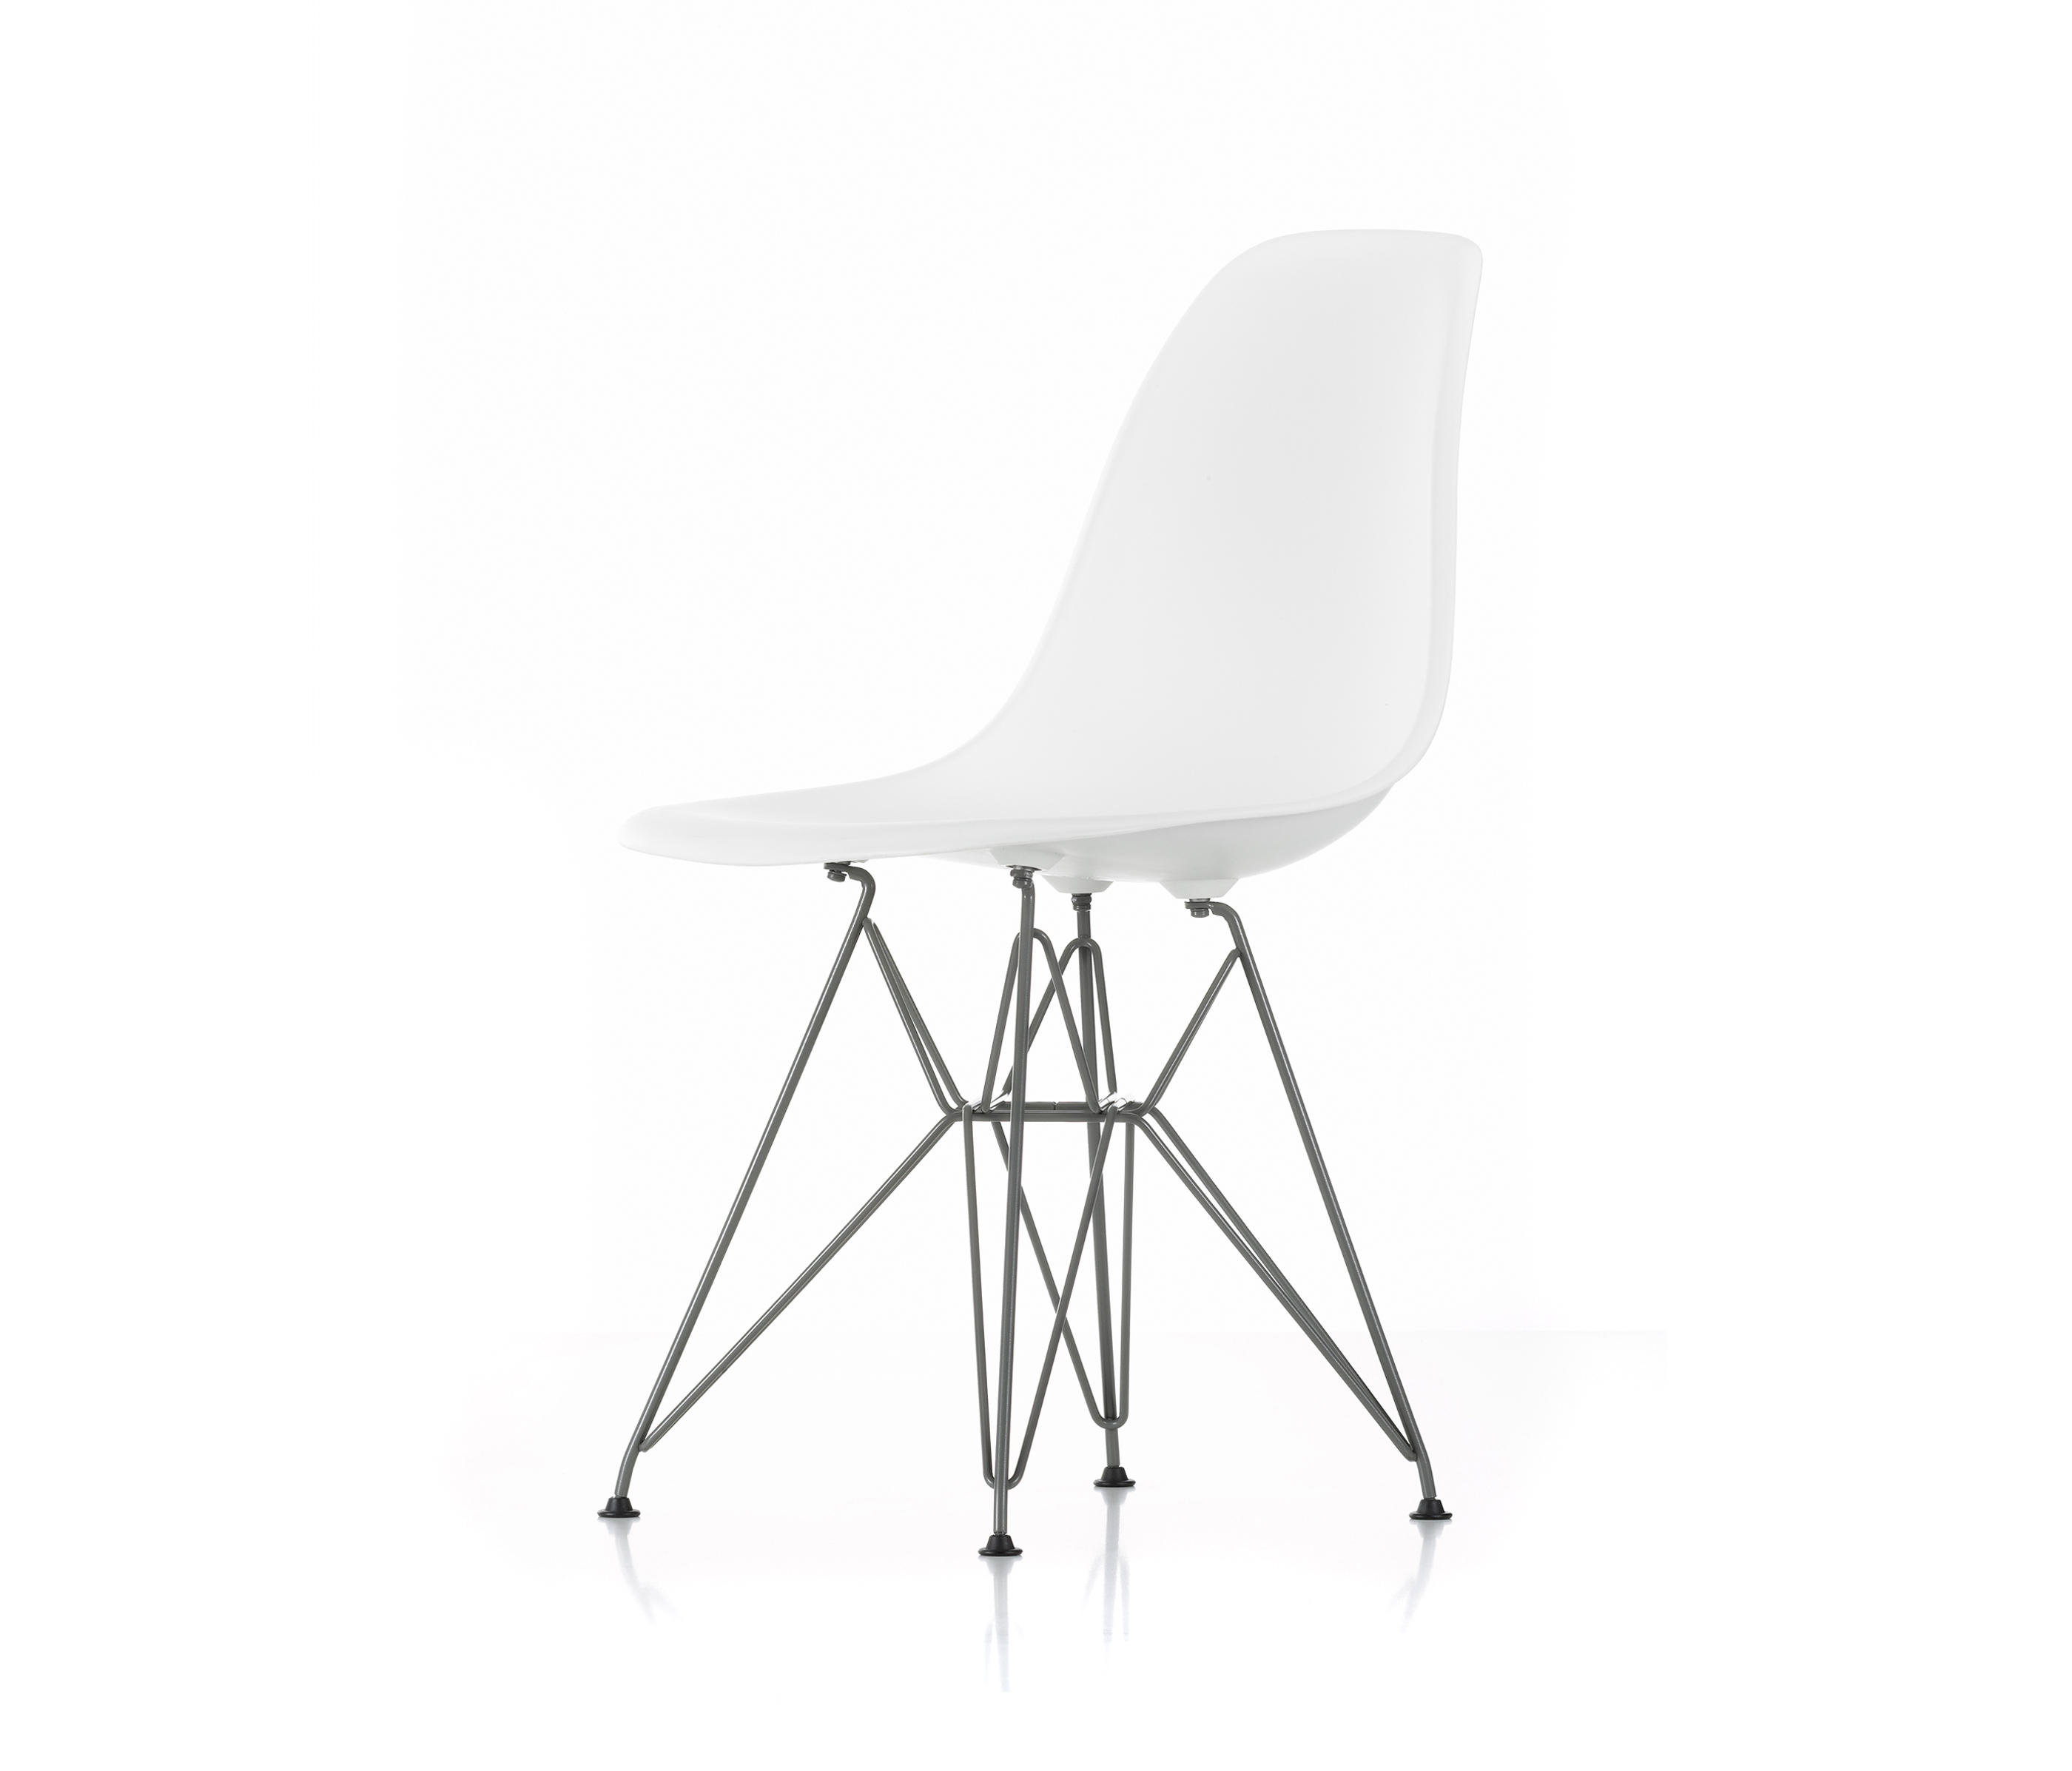 eames bucket chair plastic chairs for toddlers side dsr from vitra architonic by